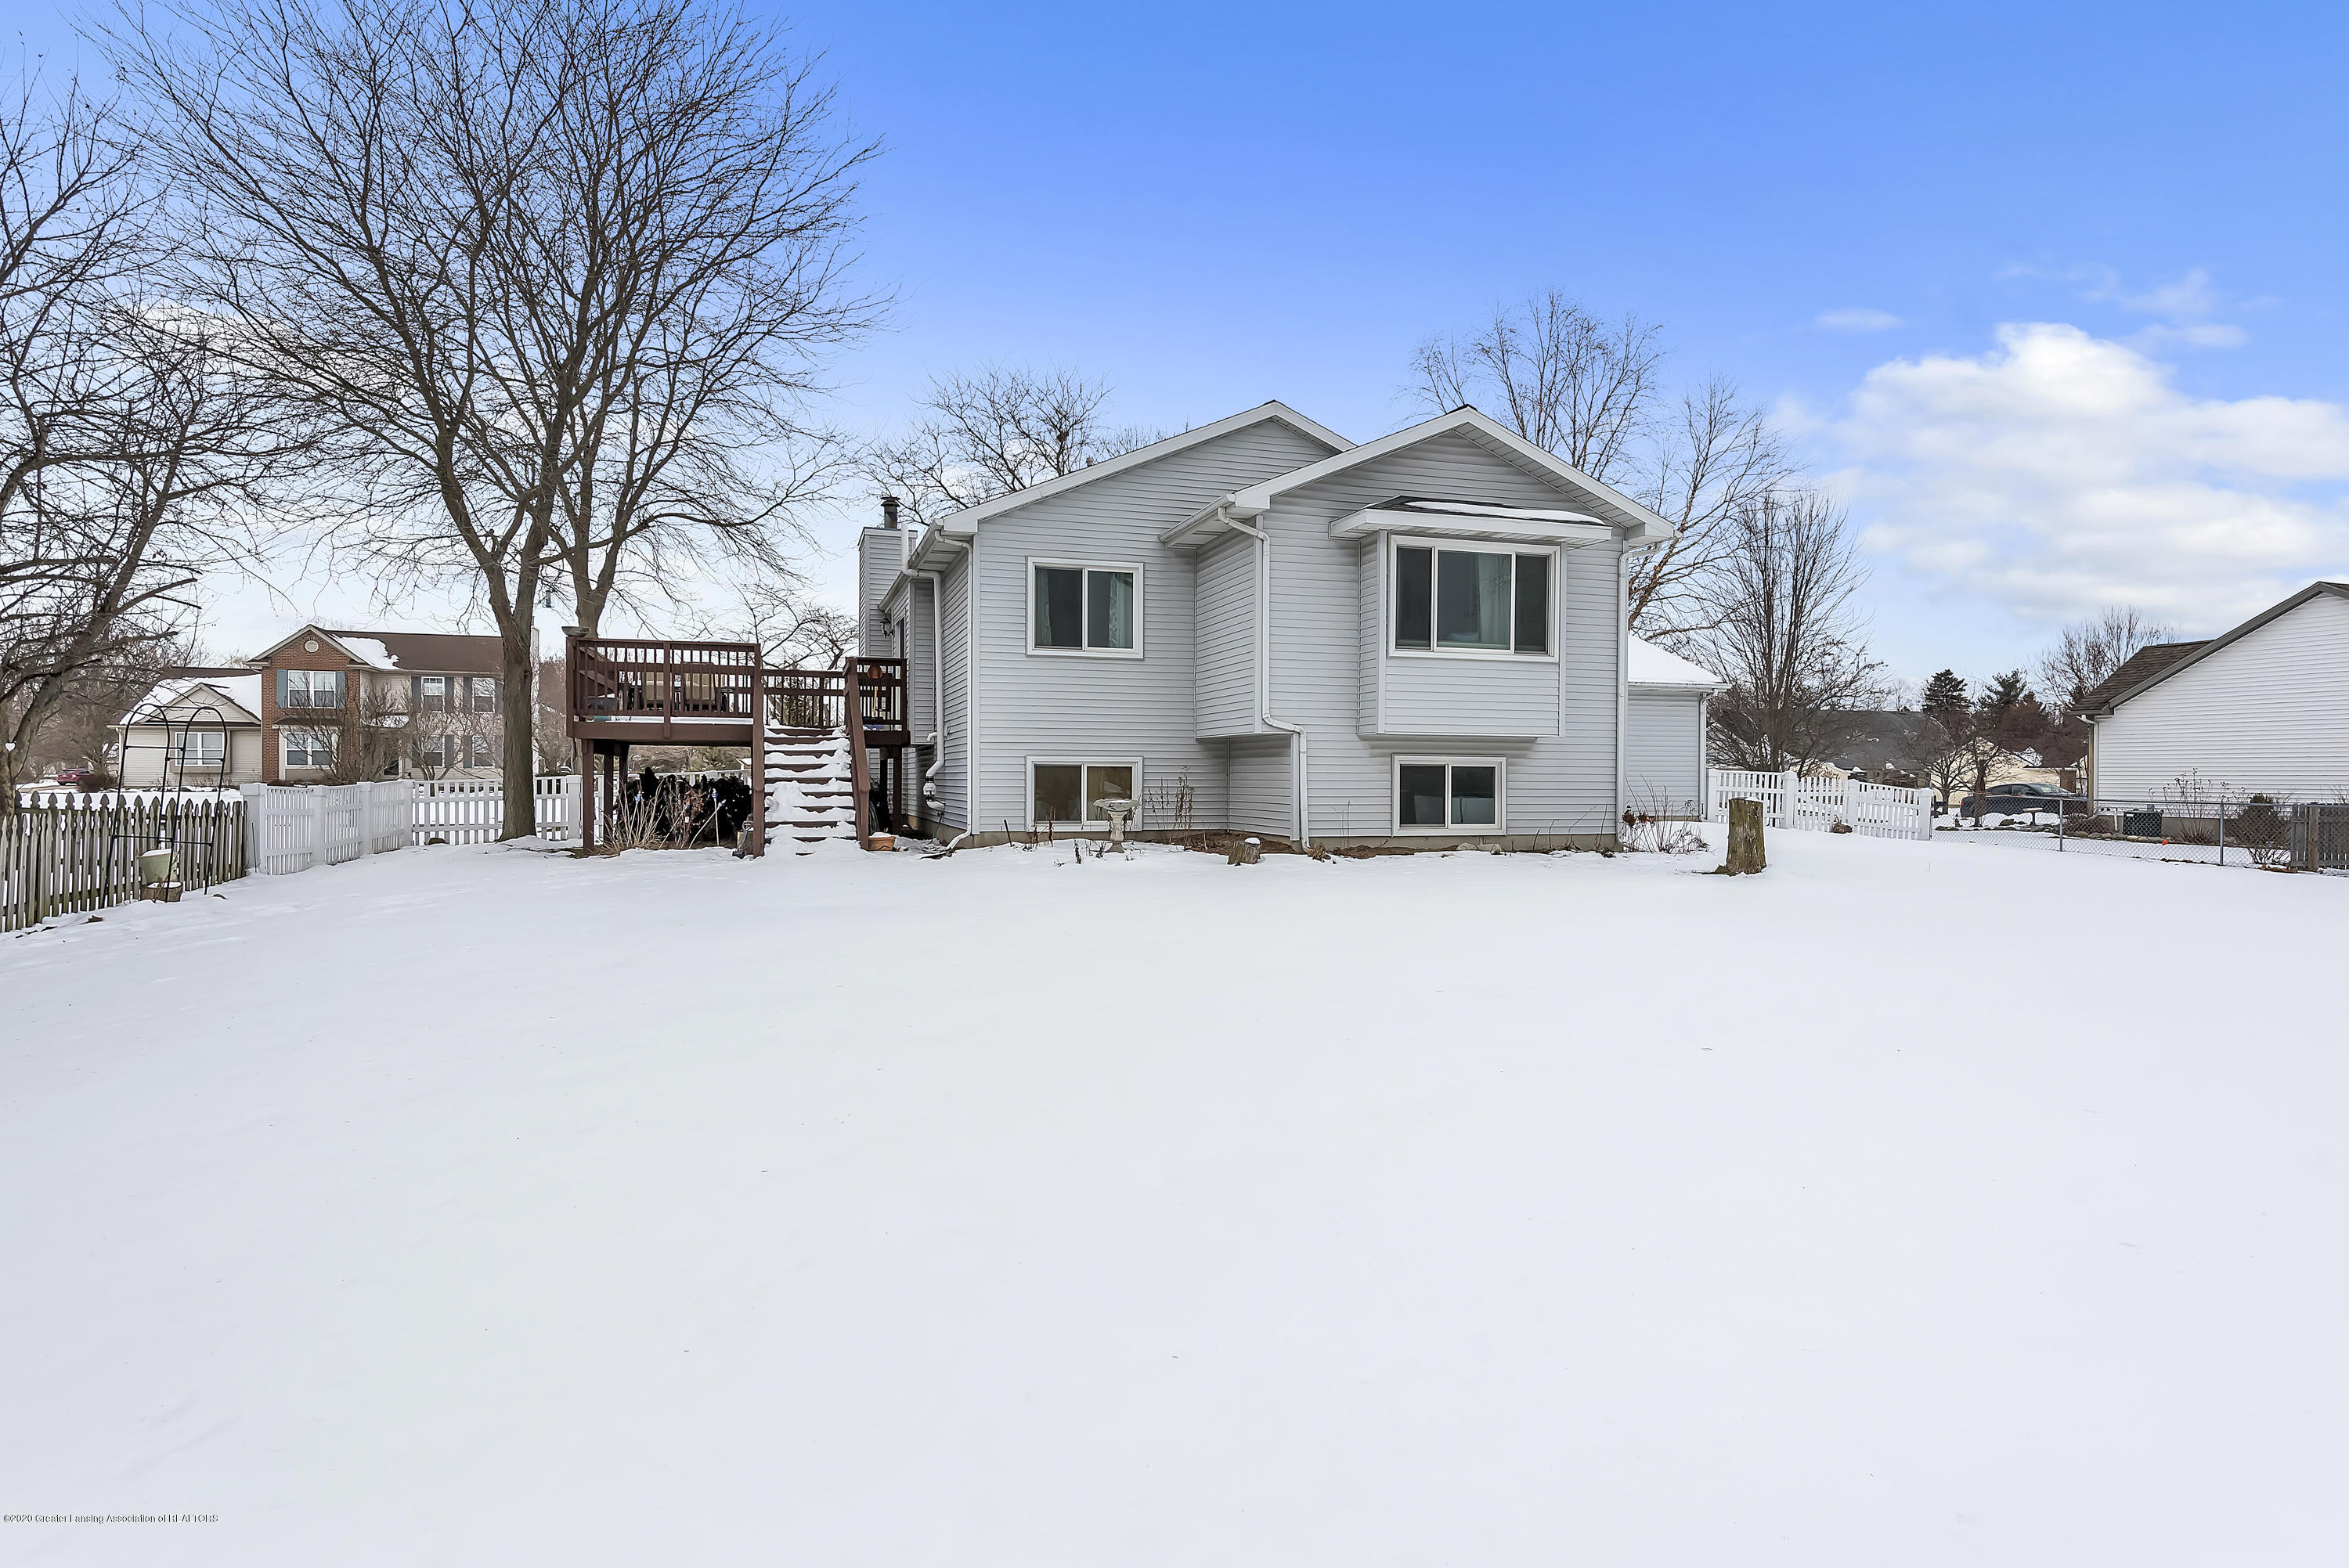 2450 Featherstone Dr - 2450-Featherstone-Dr-WindowStill-Real-Es - 31